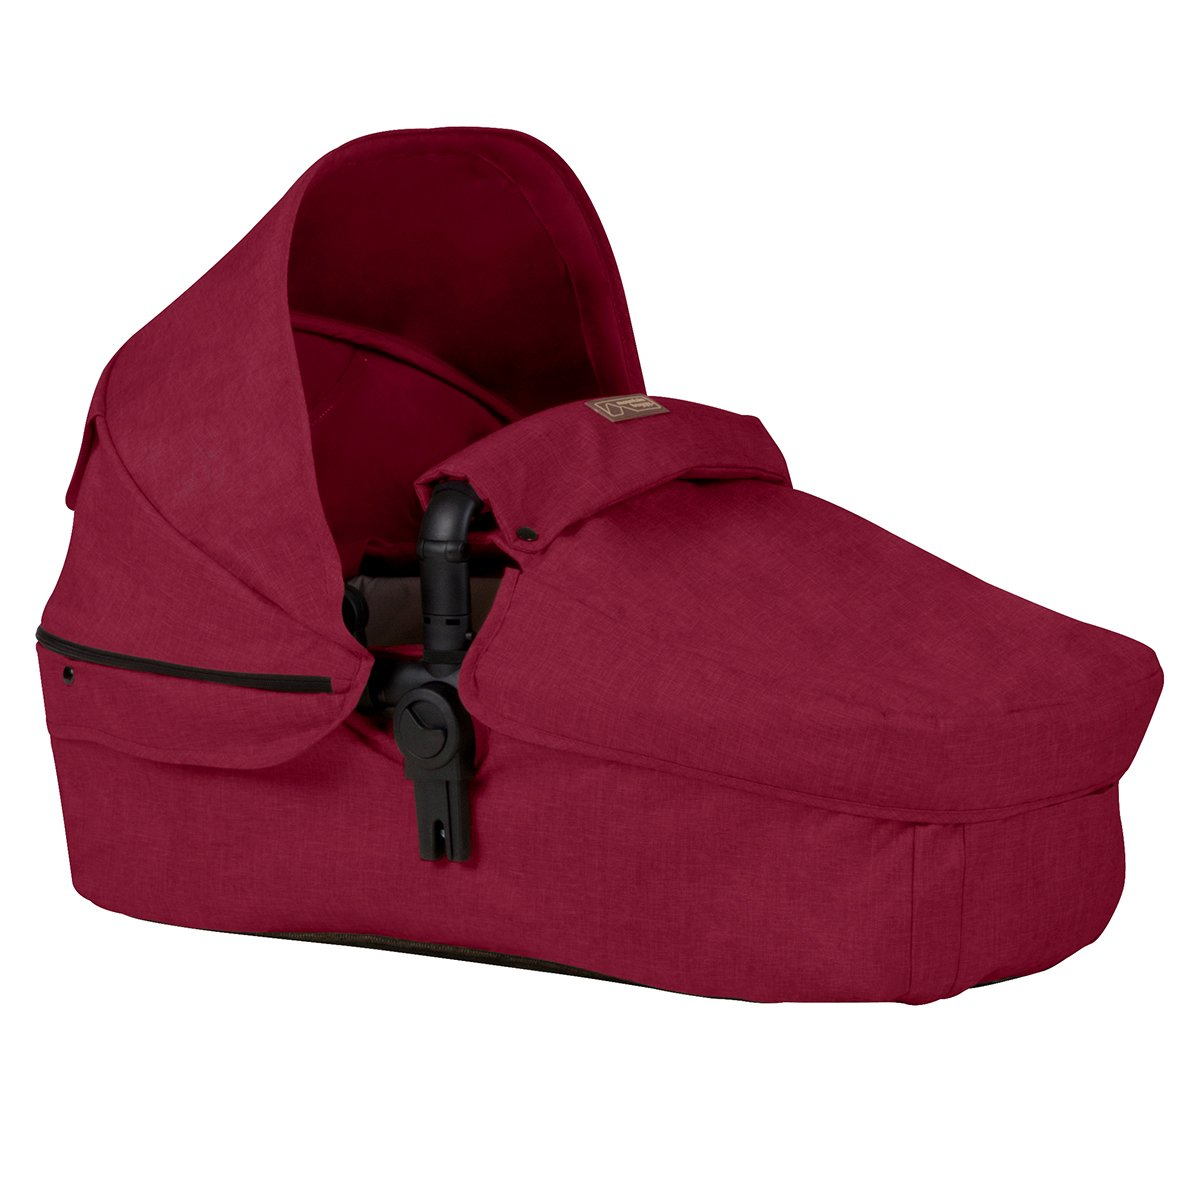 Mountain Buggy Cosmopolitan Carrycot Fabric Accessory, Red COSMOCC_V2_11